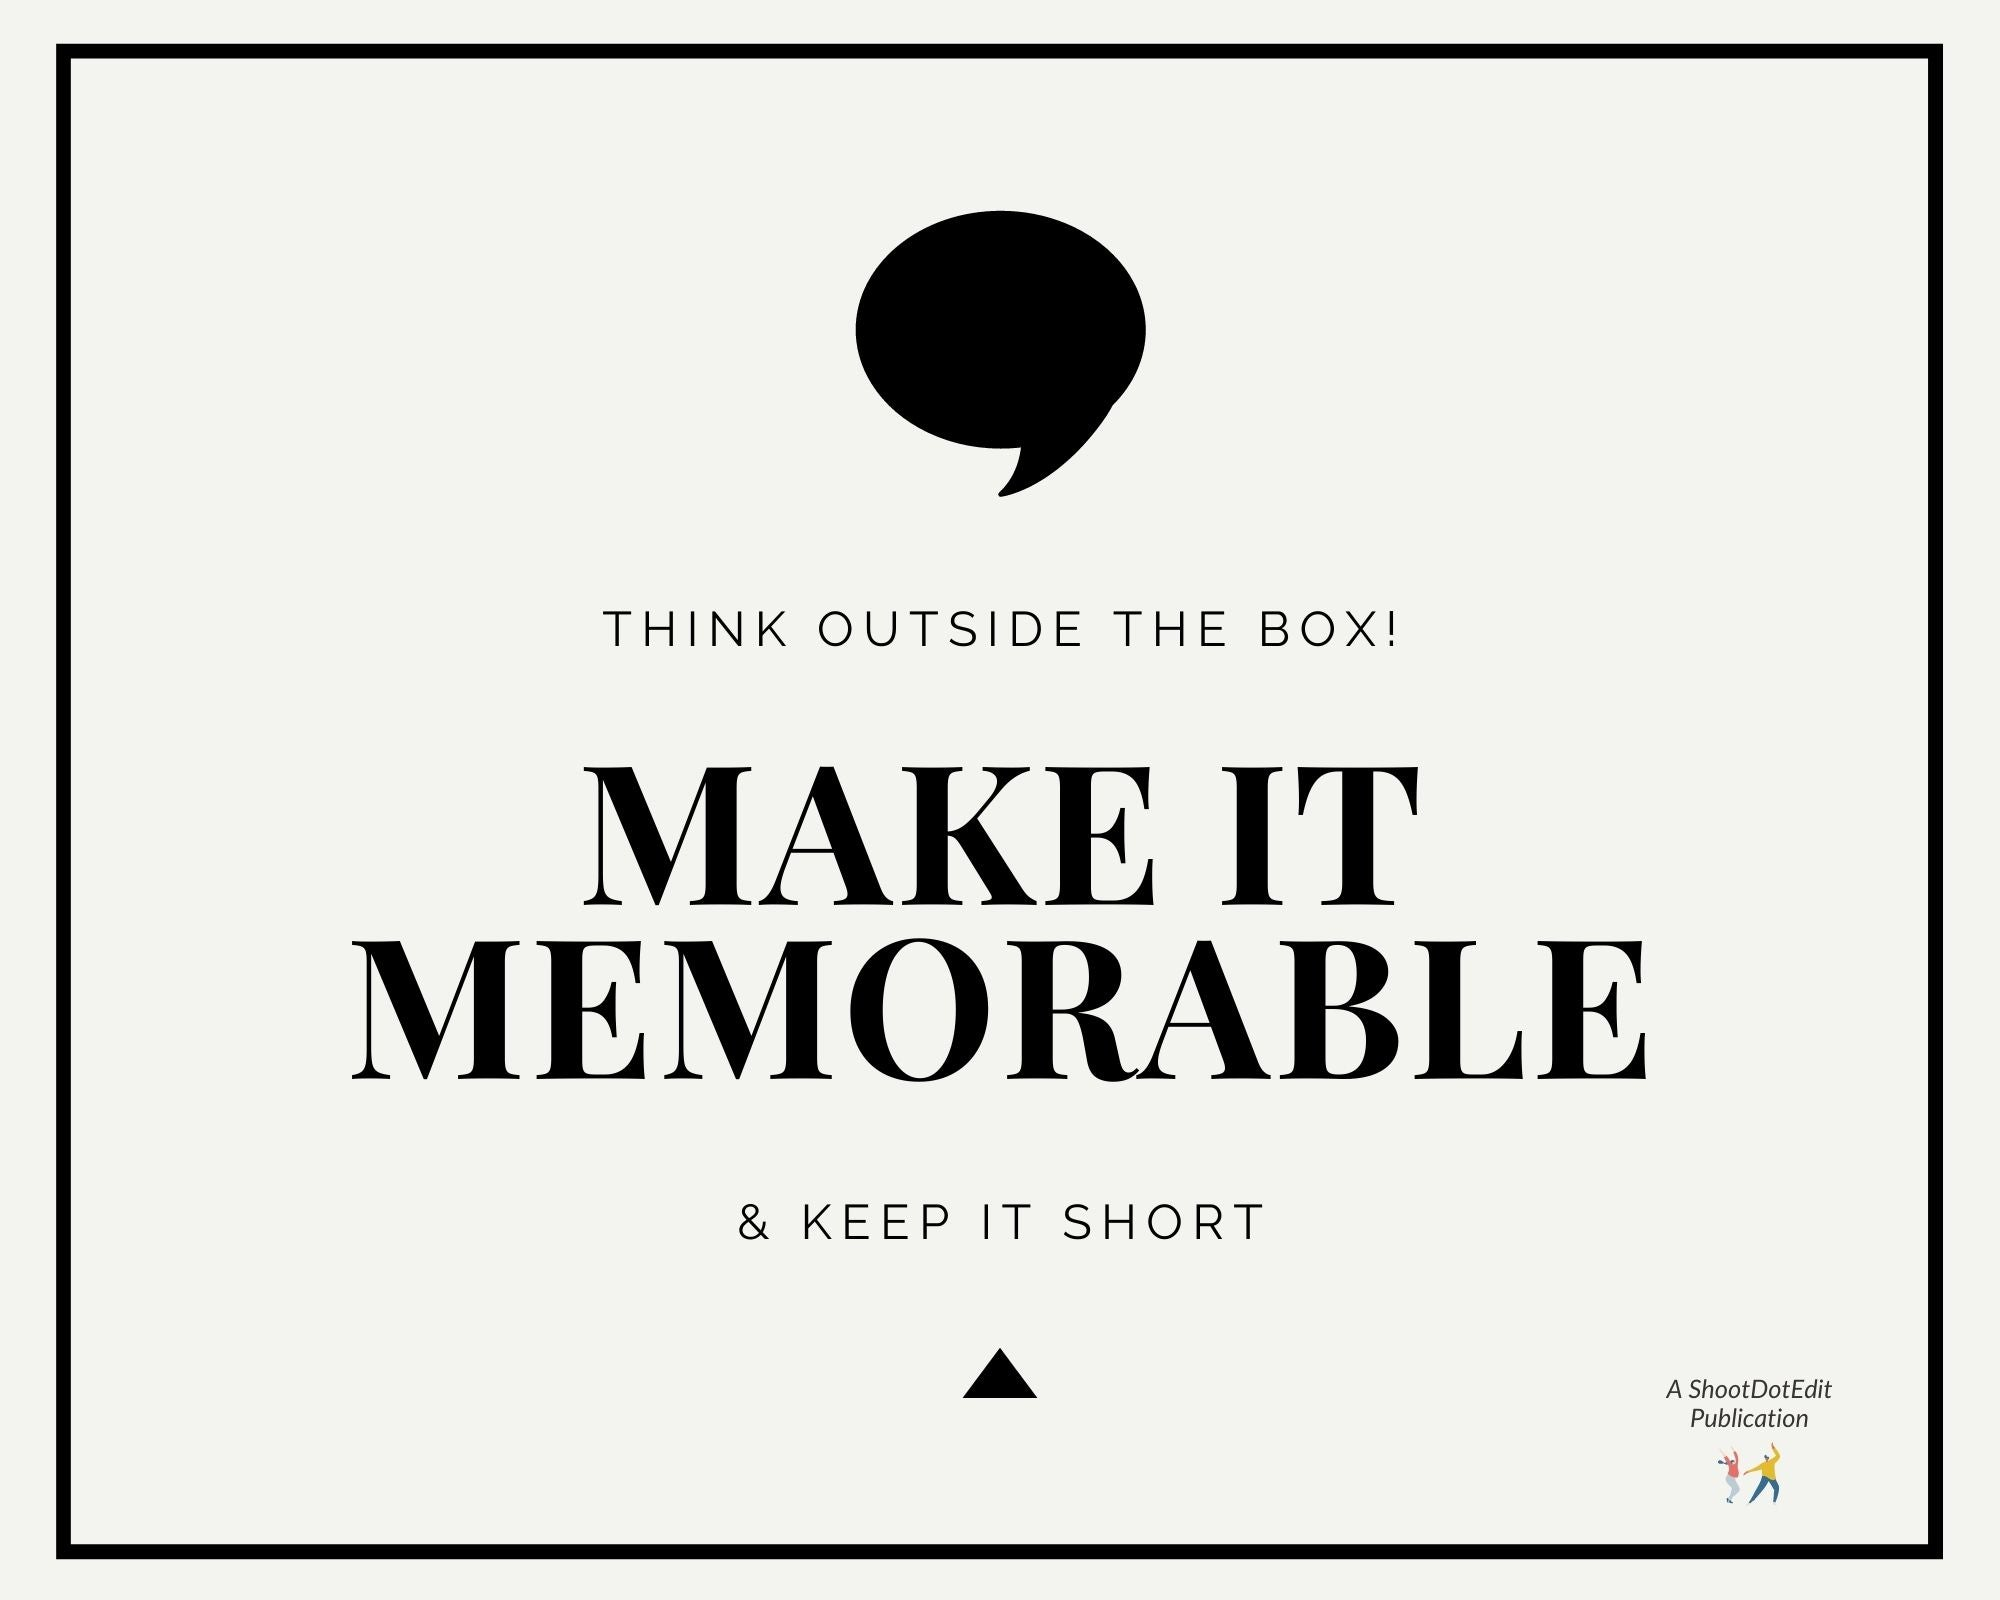 Infographic stating think outside the box, make it memorable and keep it short